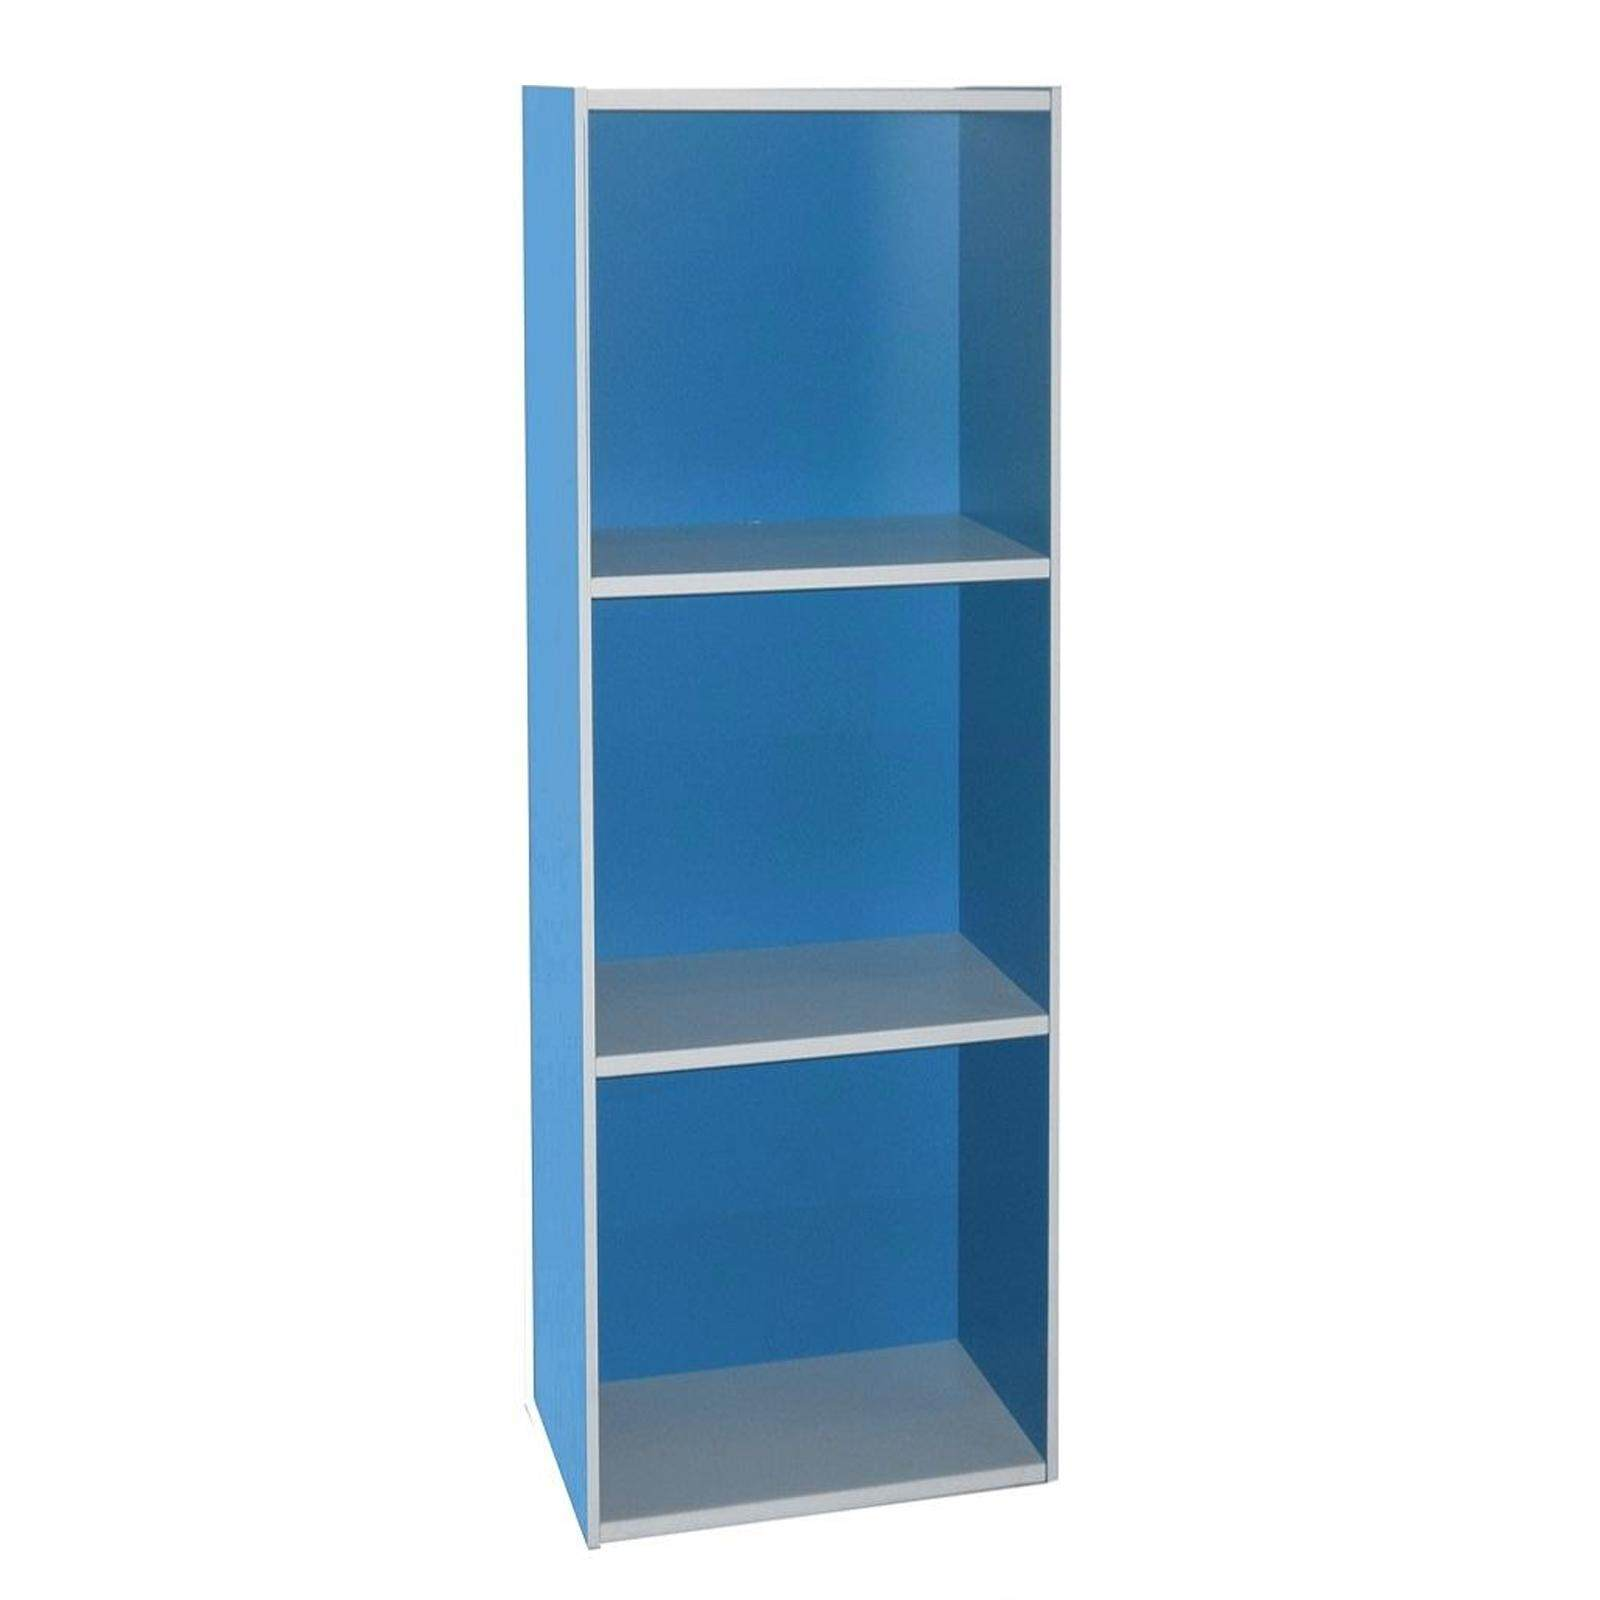 Home Bookcases & Shelving - Buy Home Bookcases & Shelving at Best ...